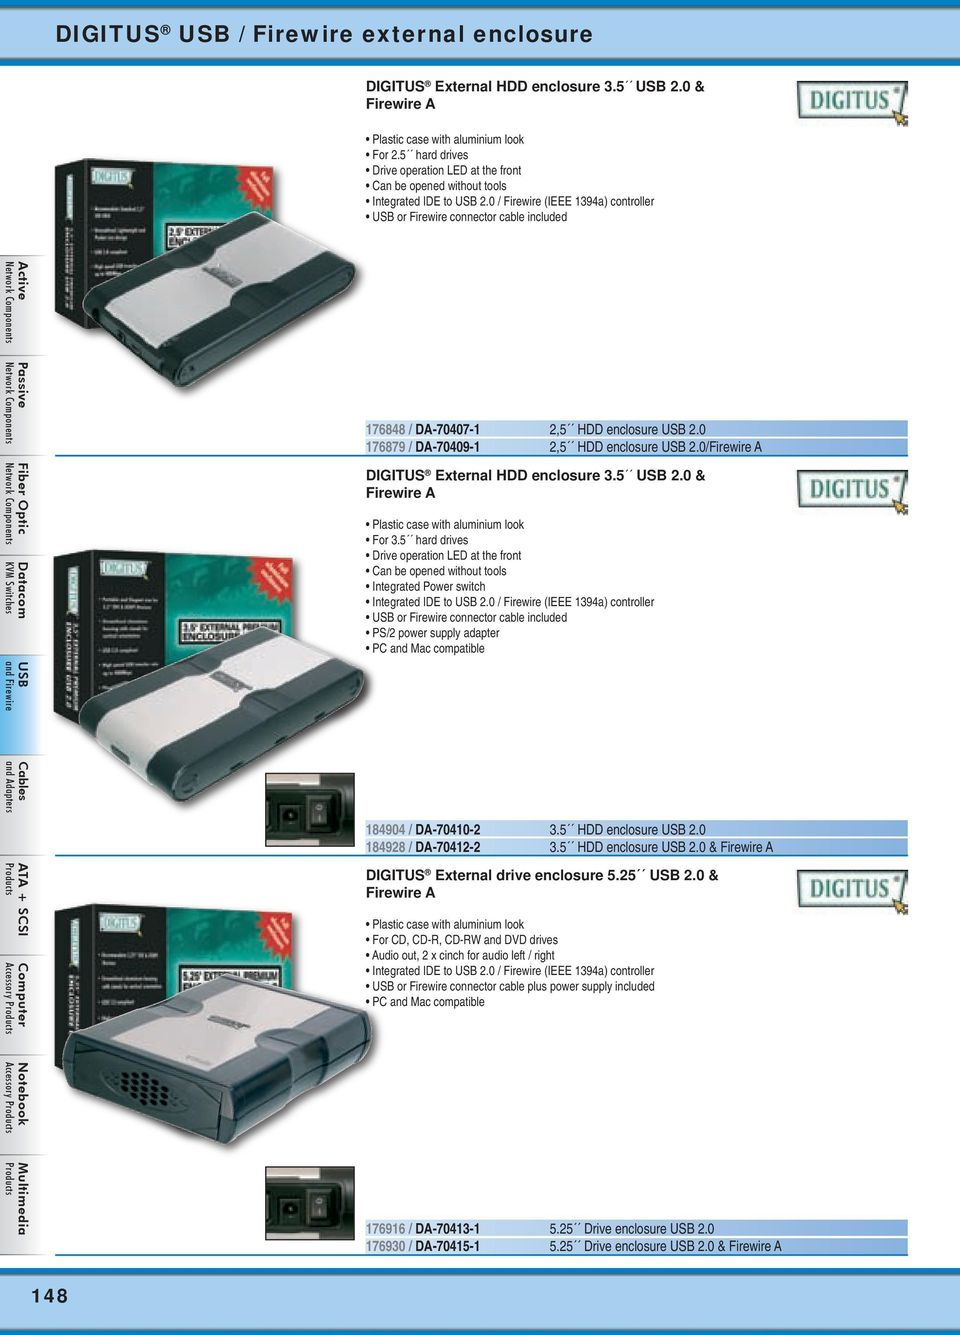 0 / Firewire (IEEE 1394a) controller or Firewire connector cable included 176848 / DA-70407-1 2,5 HDD enclosure 2.0 176879 / DA-70409-1 2,5 HDD enclosure 2.